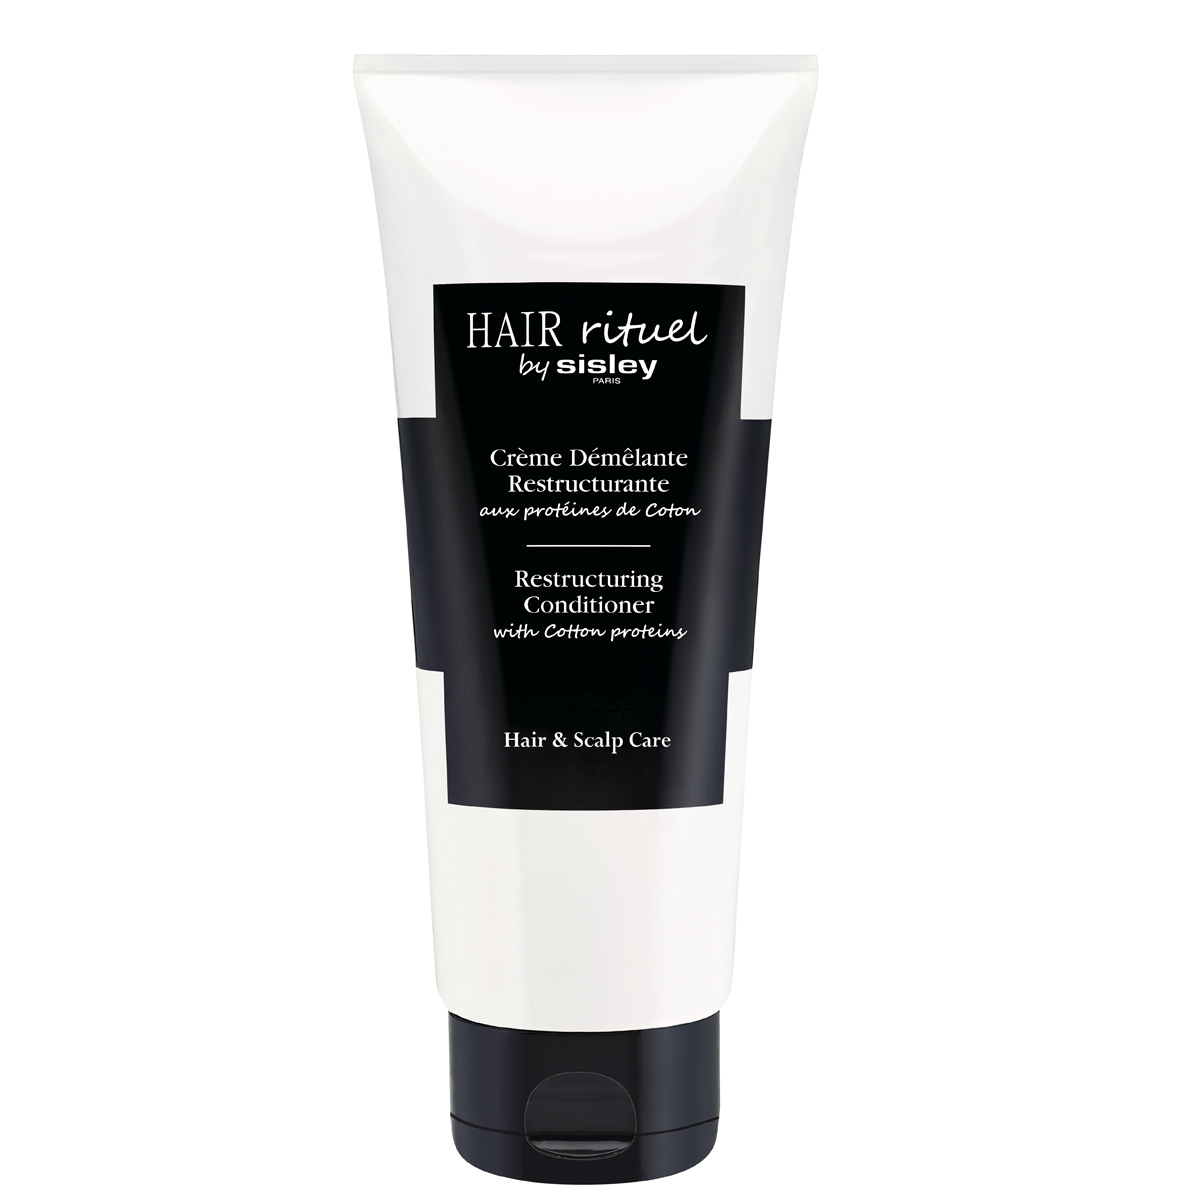 Restructuring Conditioner, Sisley (55 euros).